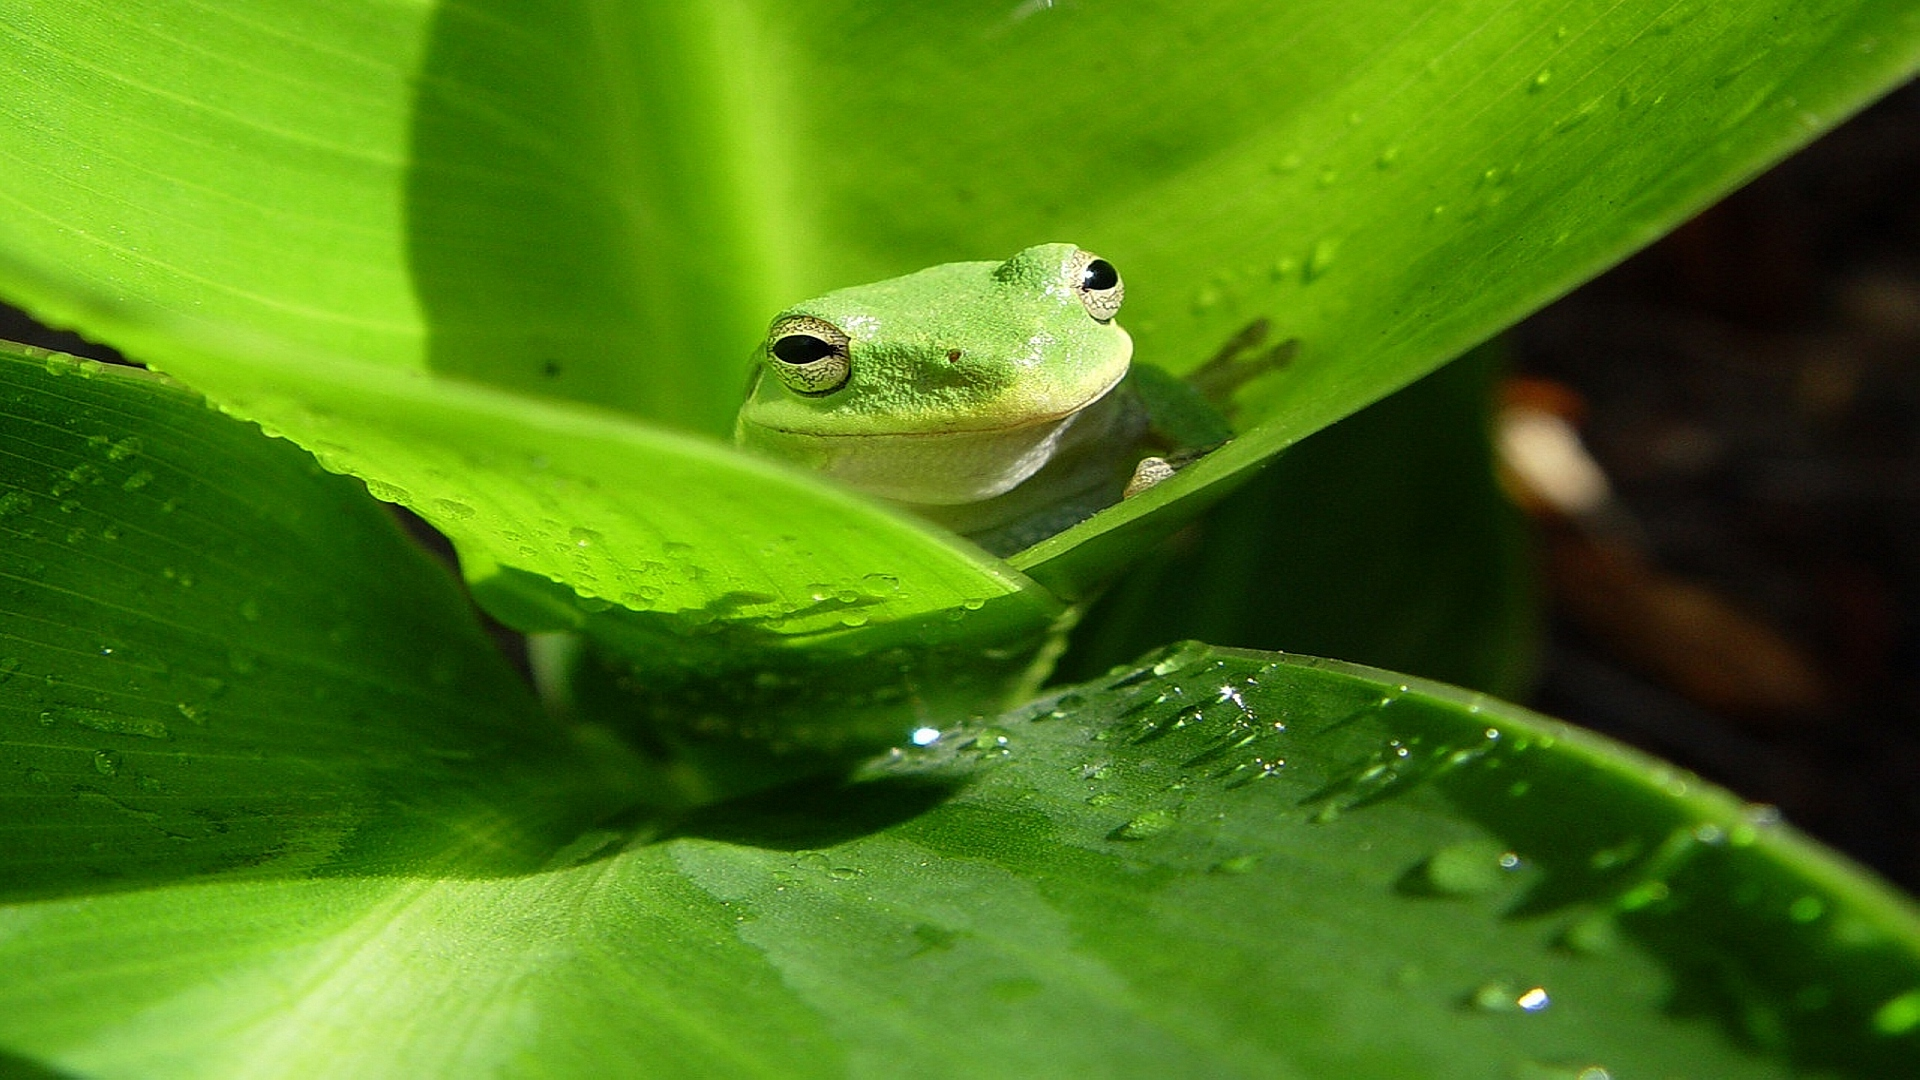 animal planet frogs green wallpaper high highres animals added 1920x1080